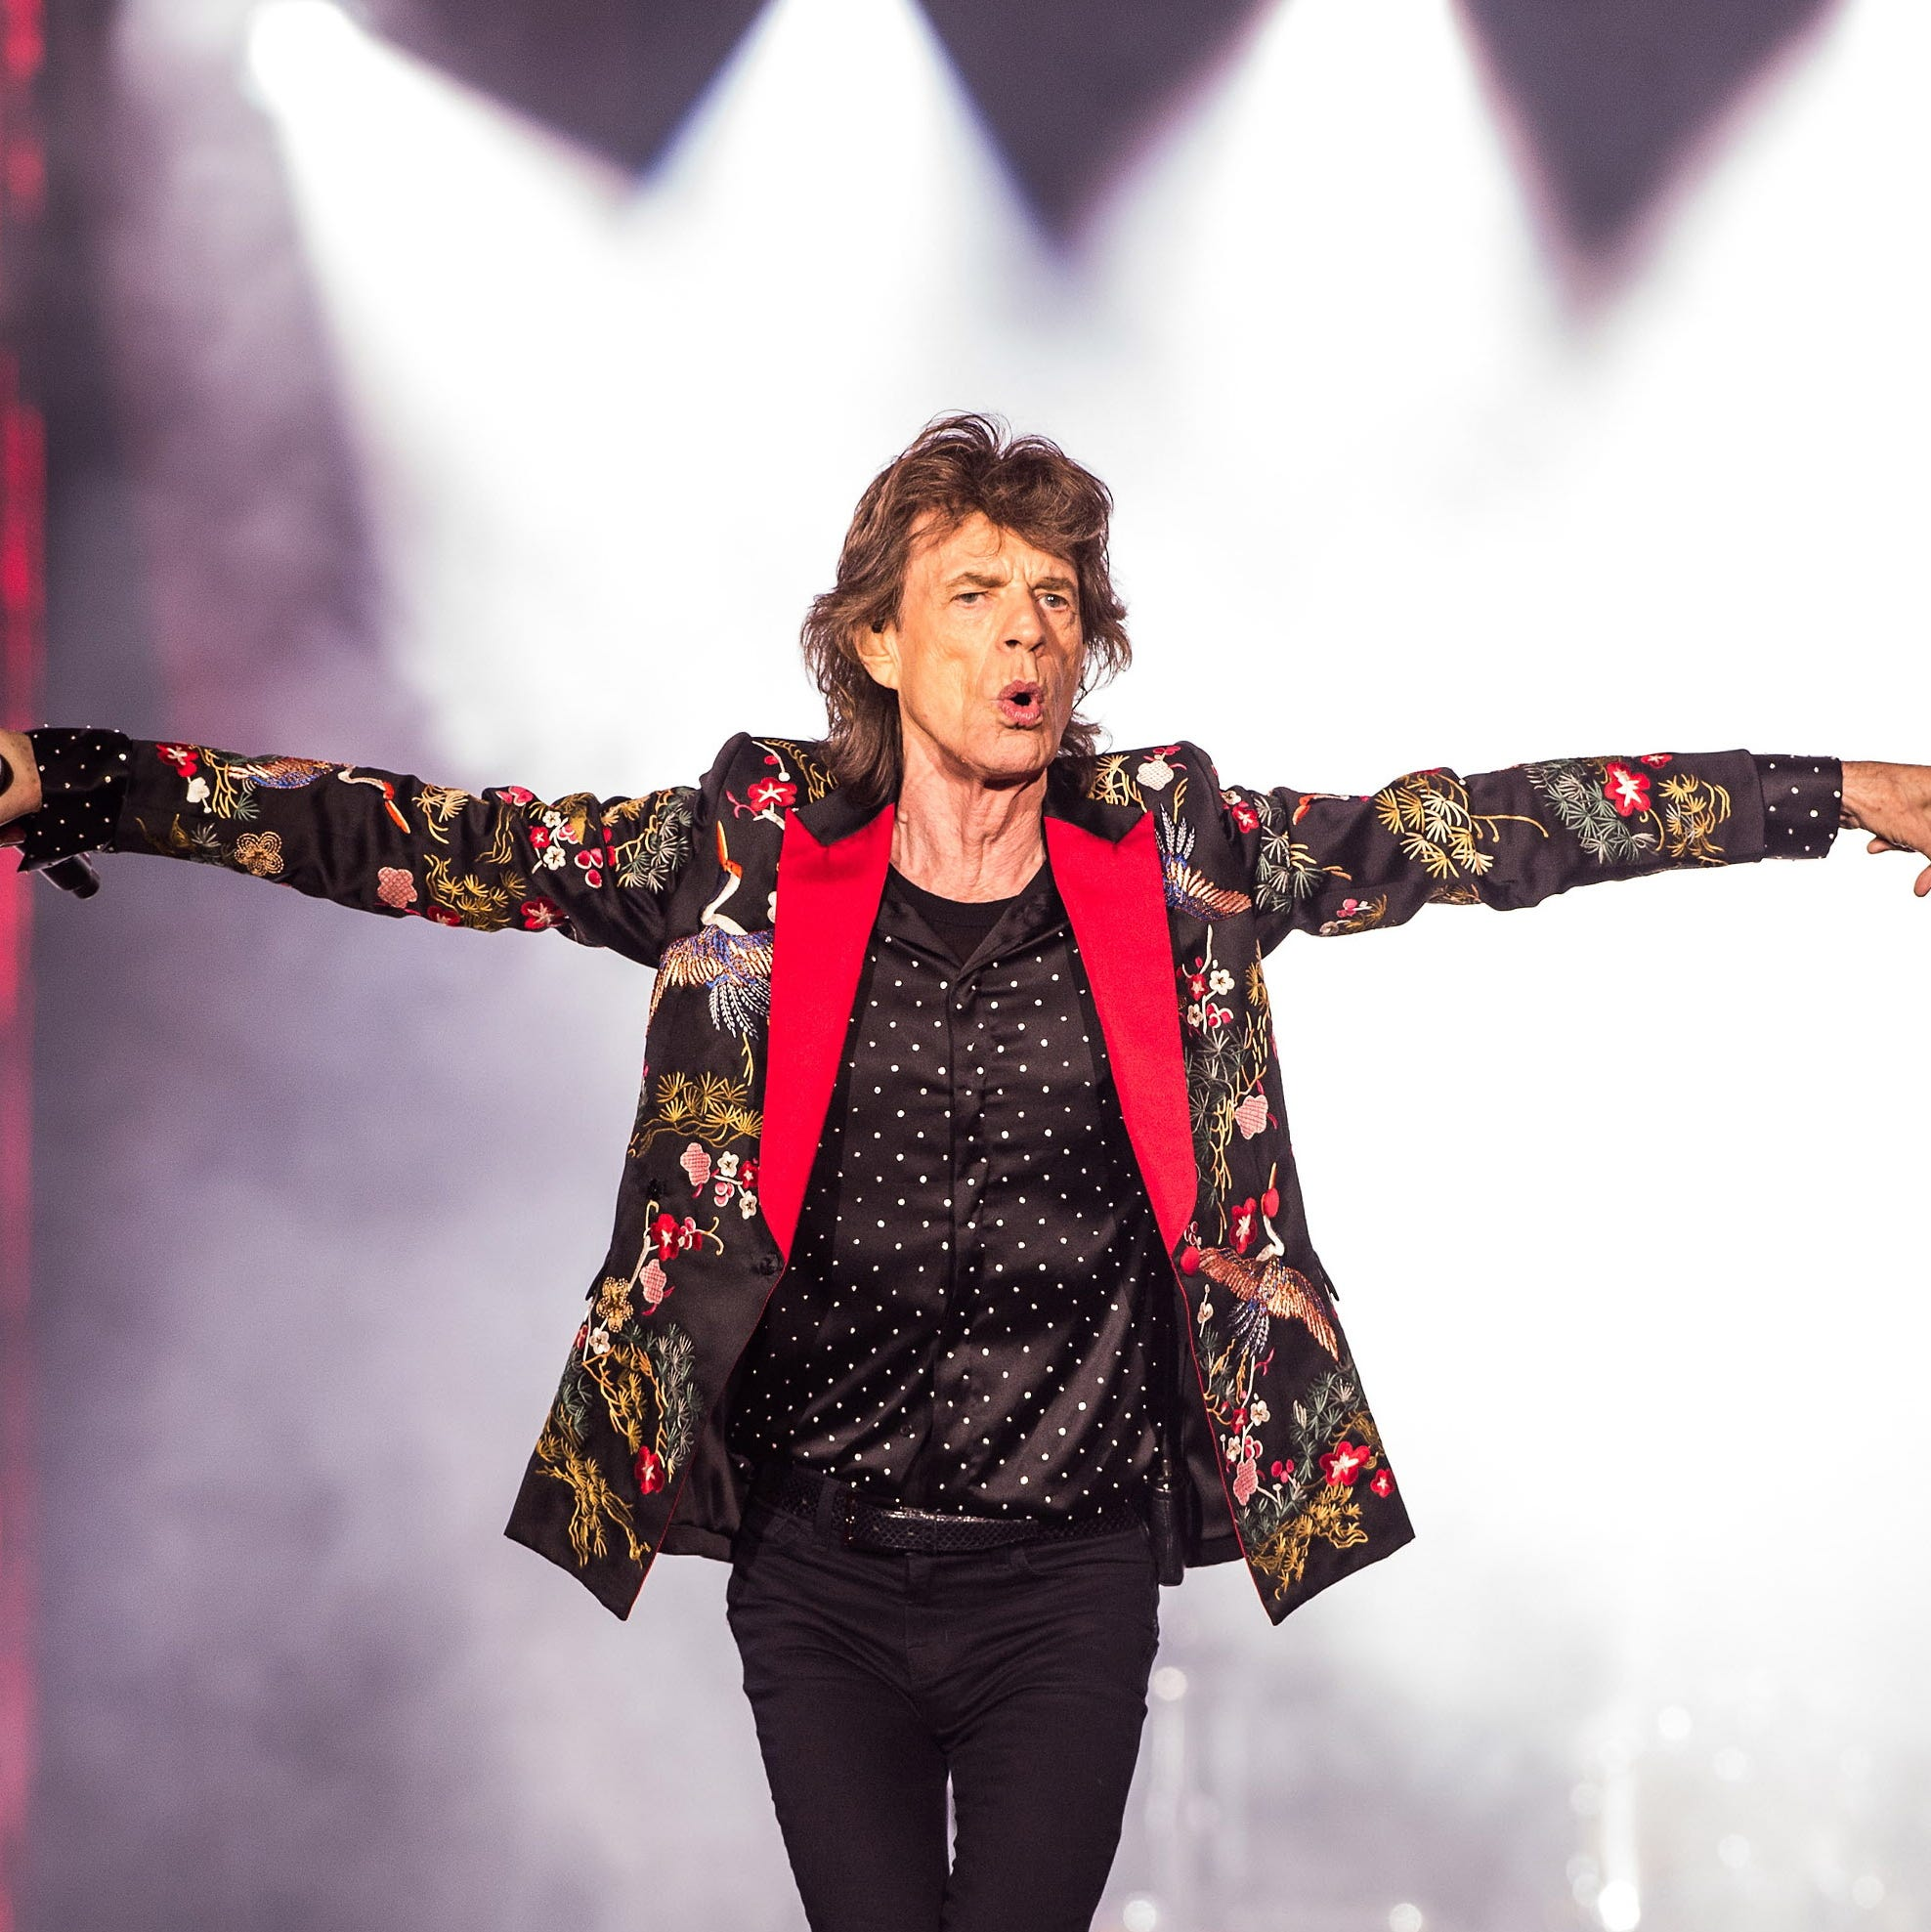 Rolling Stones 2019 tour includes stops in East Rutherford and Philadelphia in June